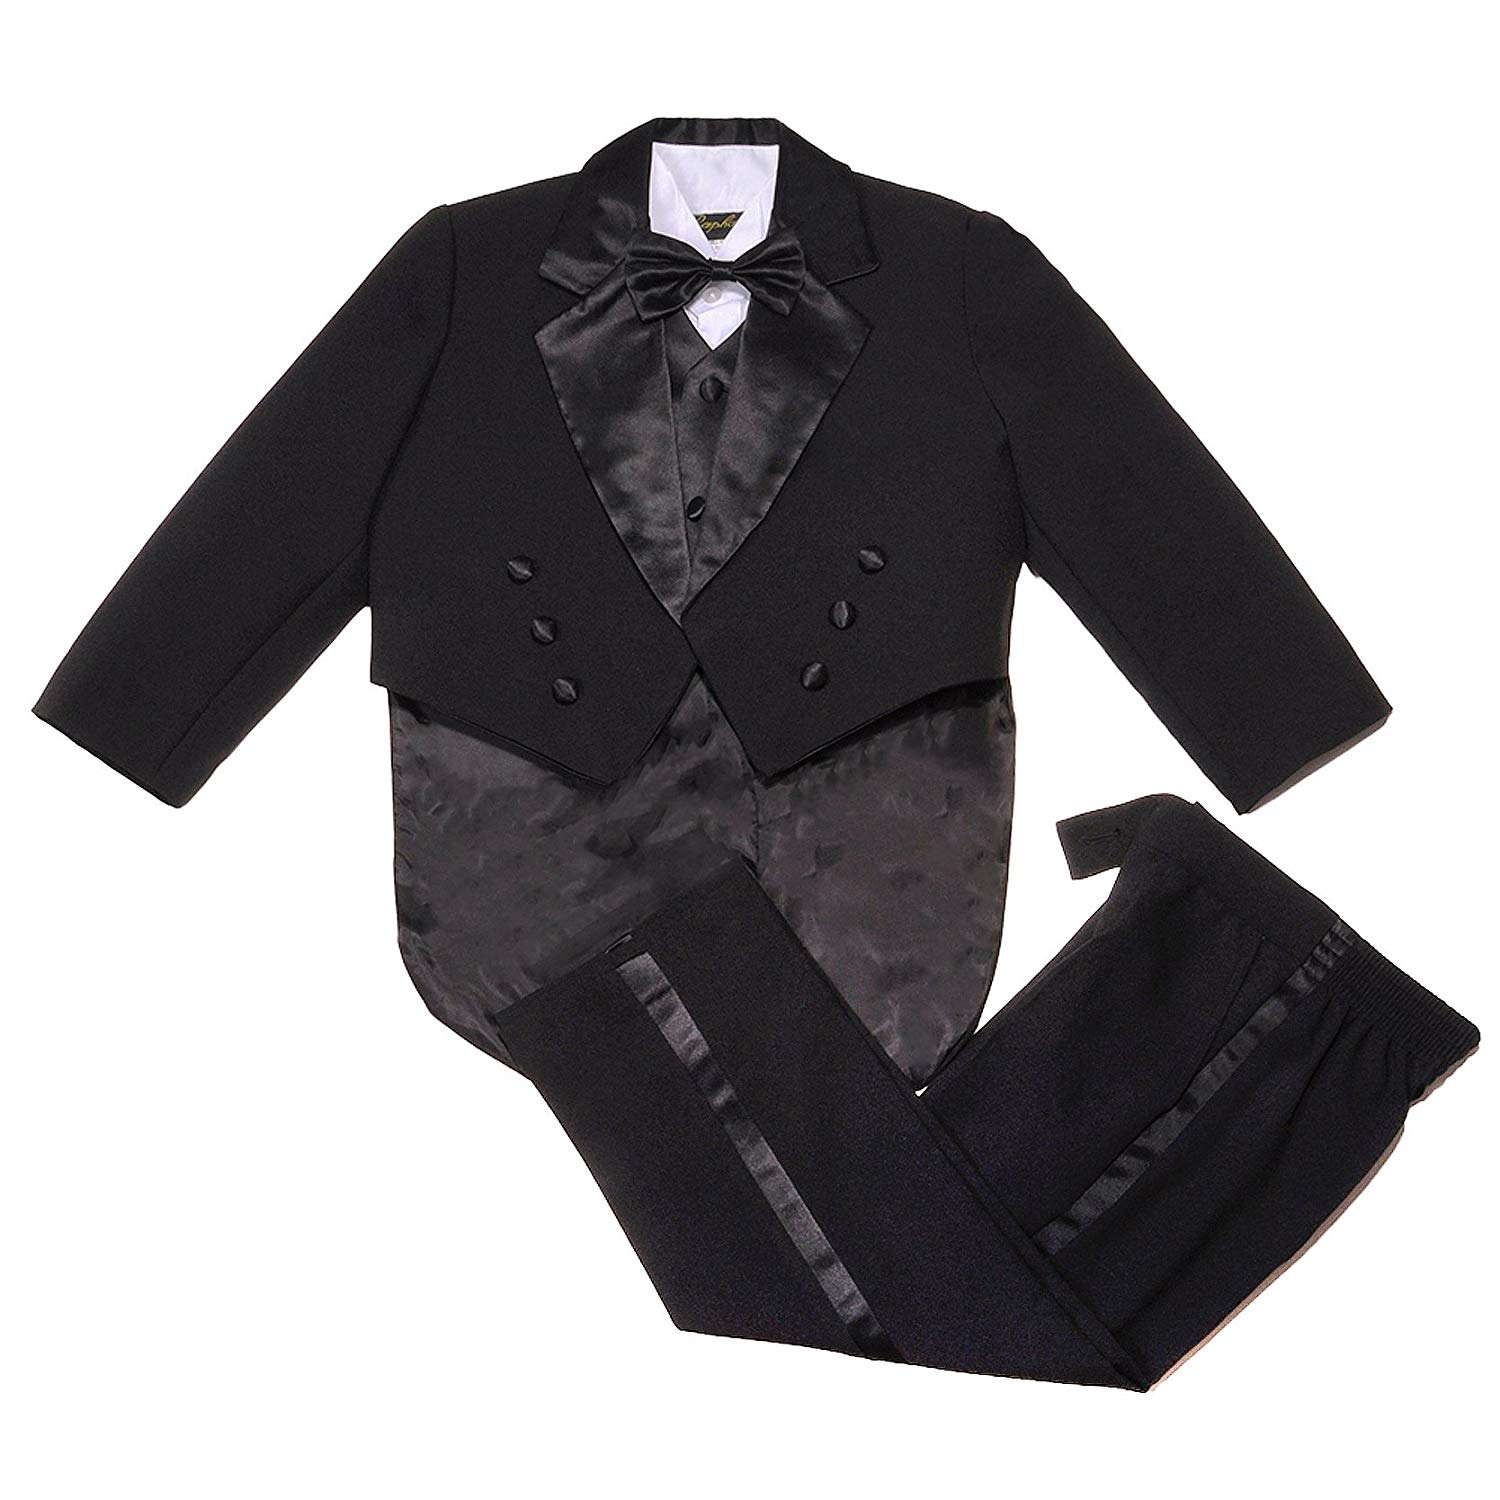 70064d72ae7 Get Quotations · NancyAugust Classic Toddler Boys Formal Tuxedo with Tail  2T-20